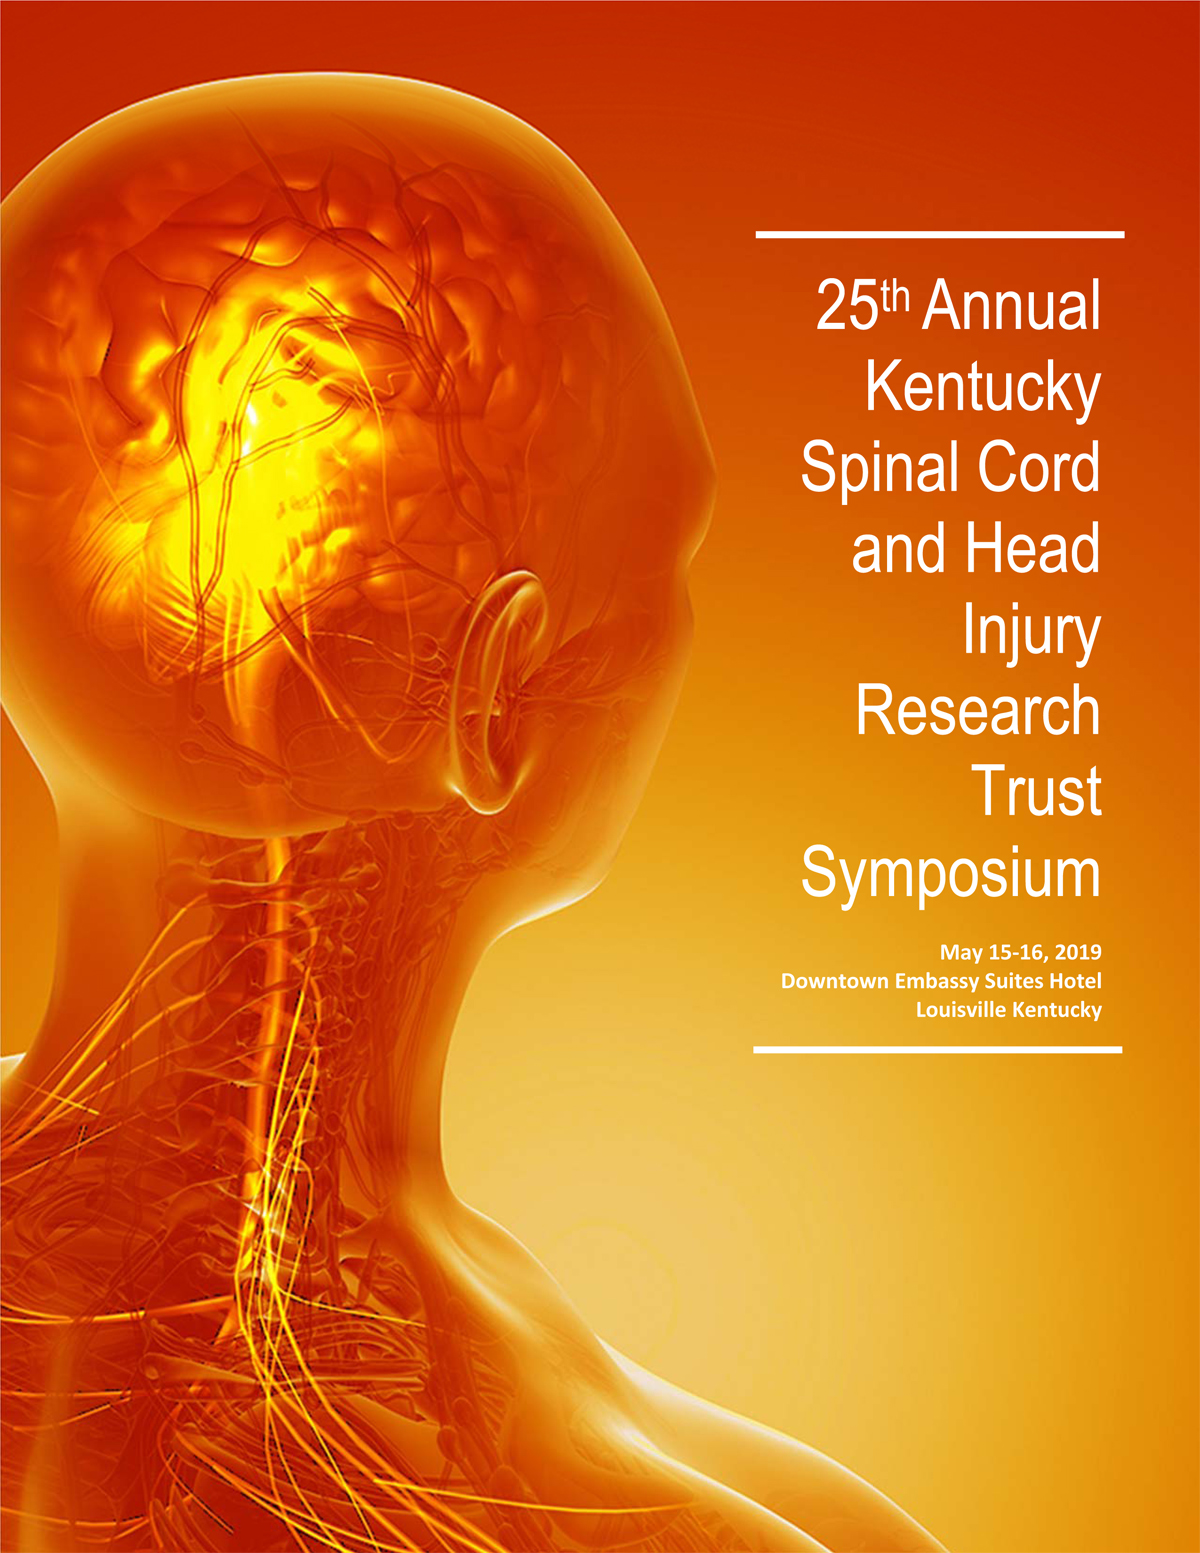 Thanks to all for a successful 25th KSCHIRT Symposium